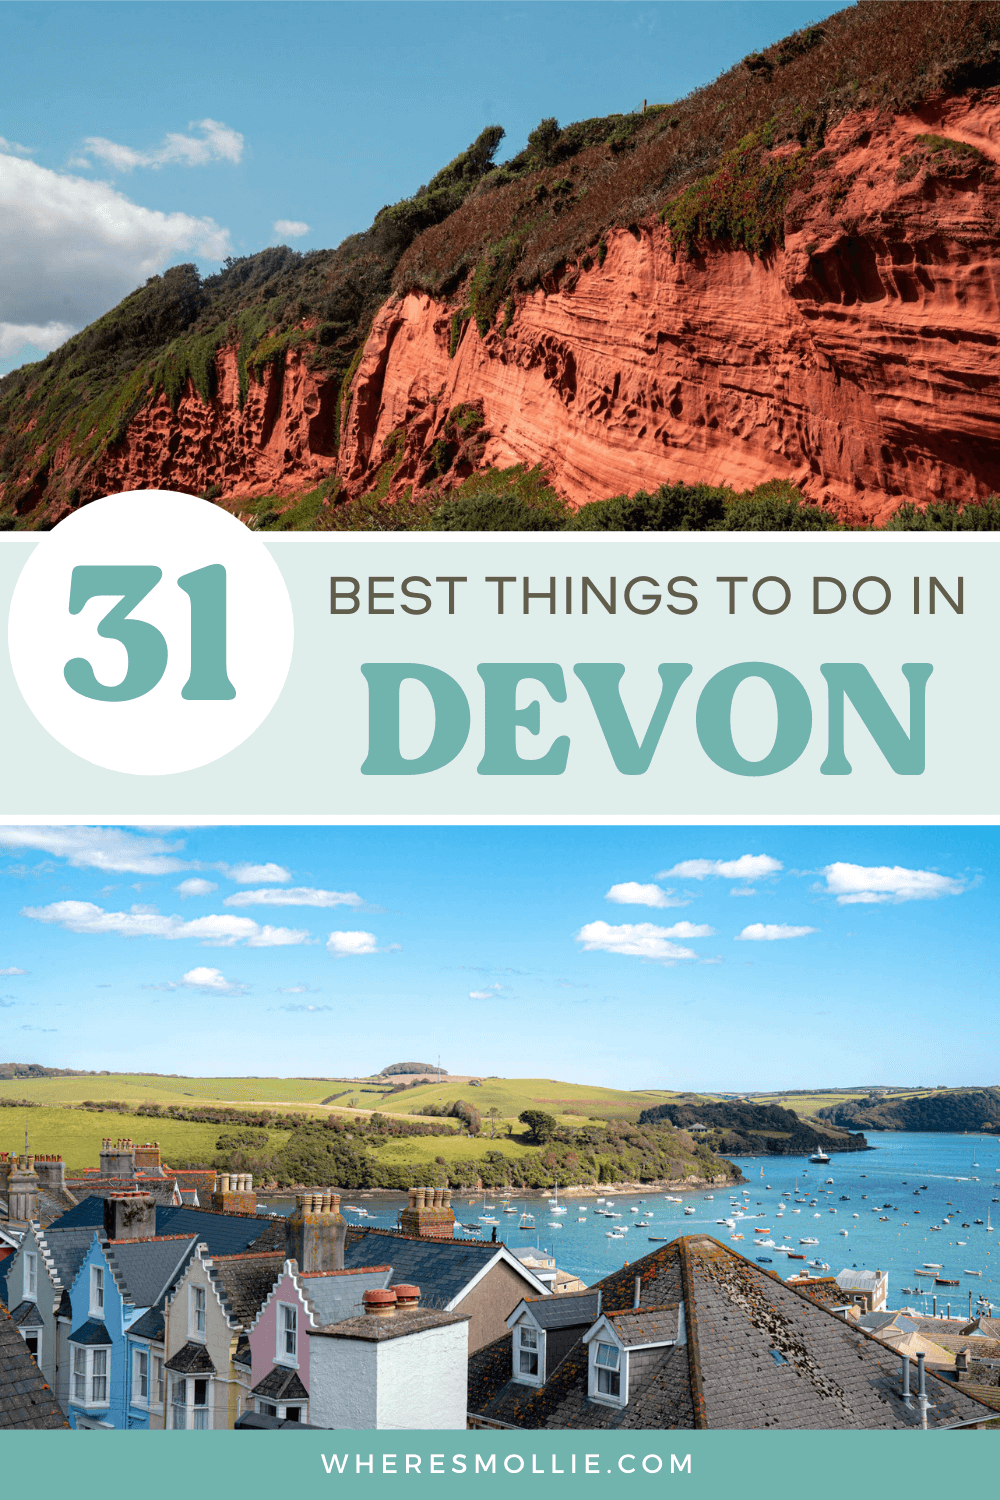 The best things to see and do in Devon, England